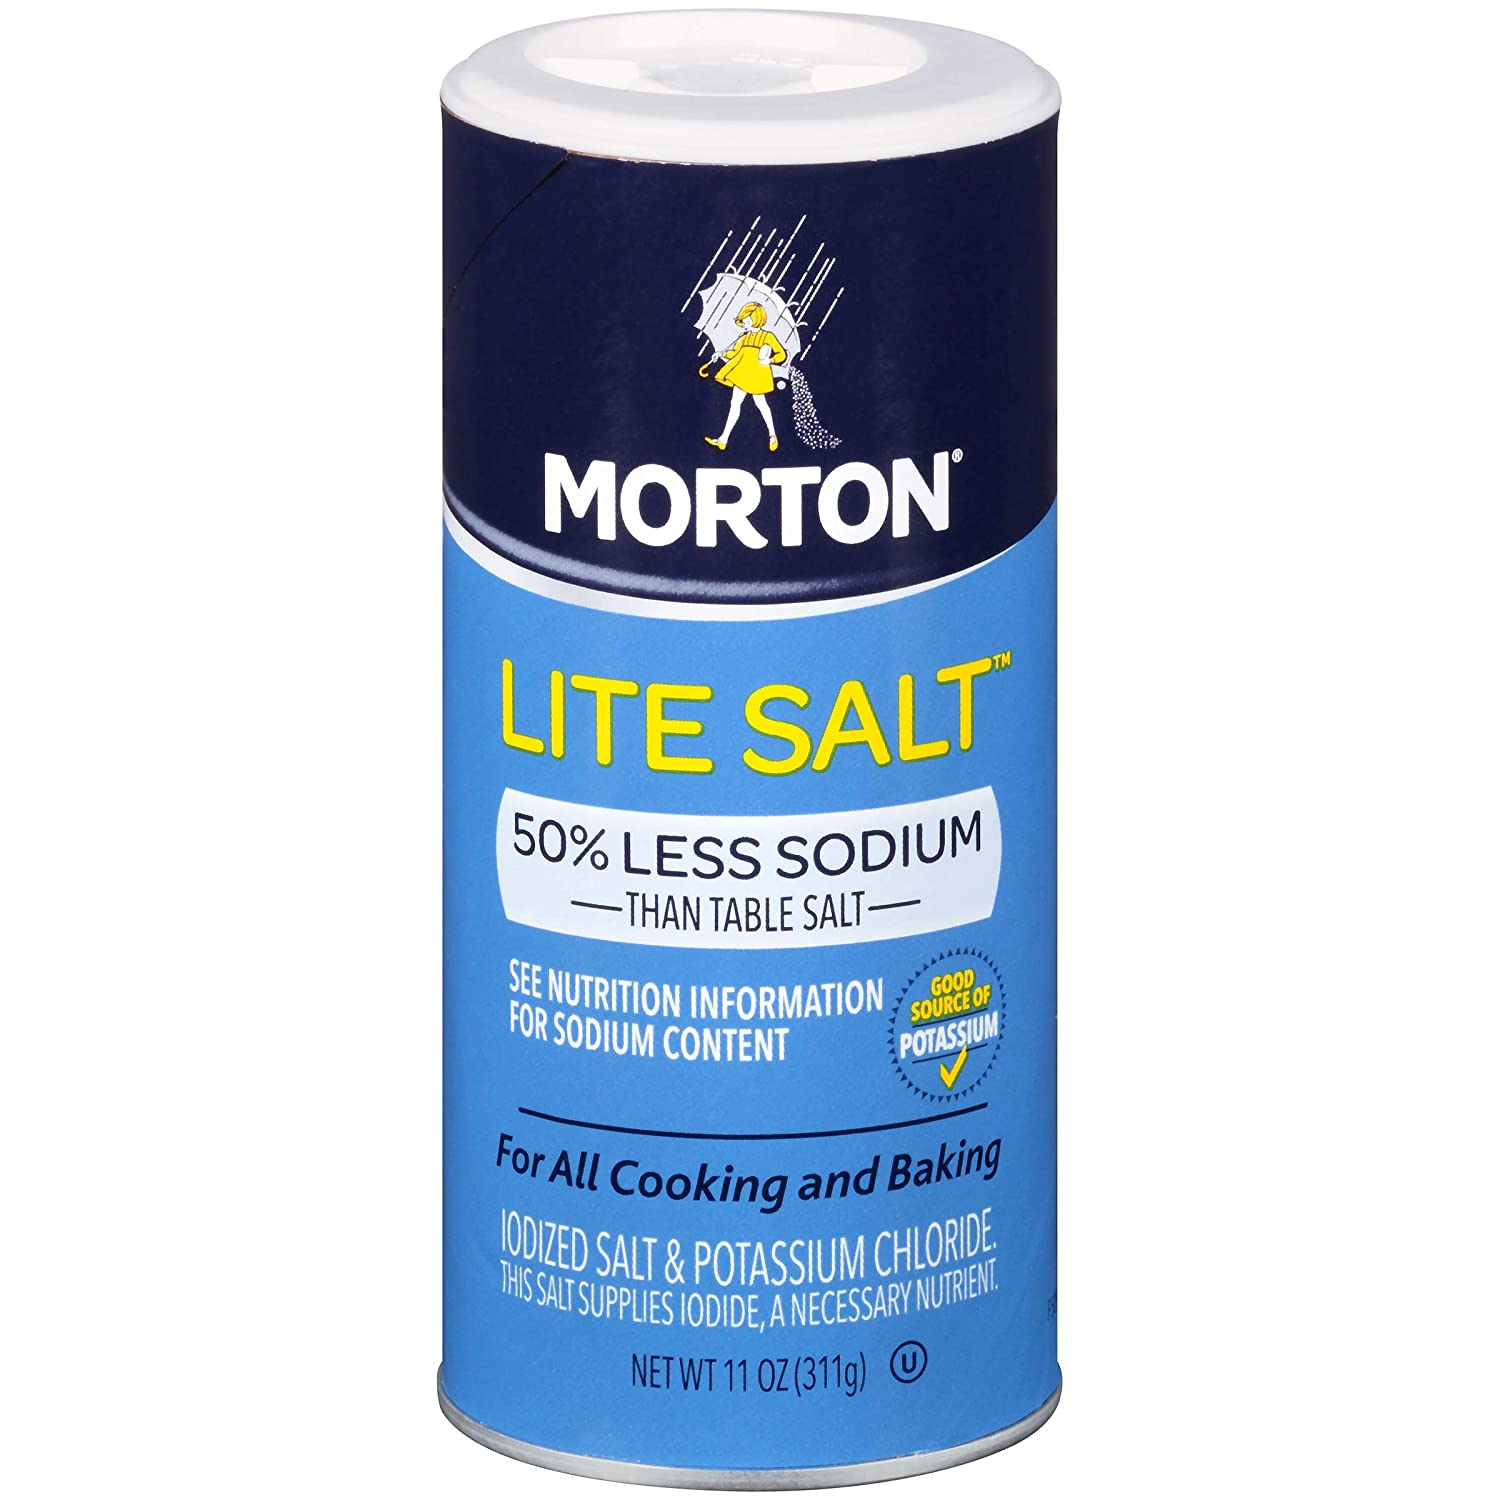 Morton Lite Salt, 11 Ounce Canister (Pack of 12) : Salt Substitutes : Grocery & Gourmet Food